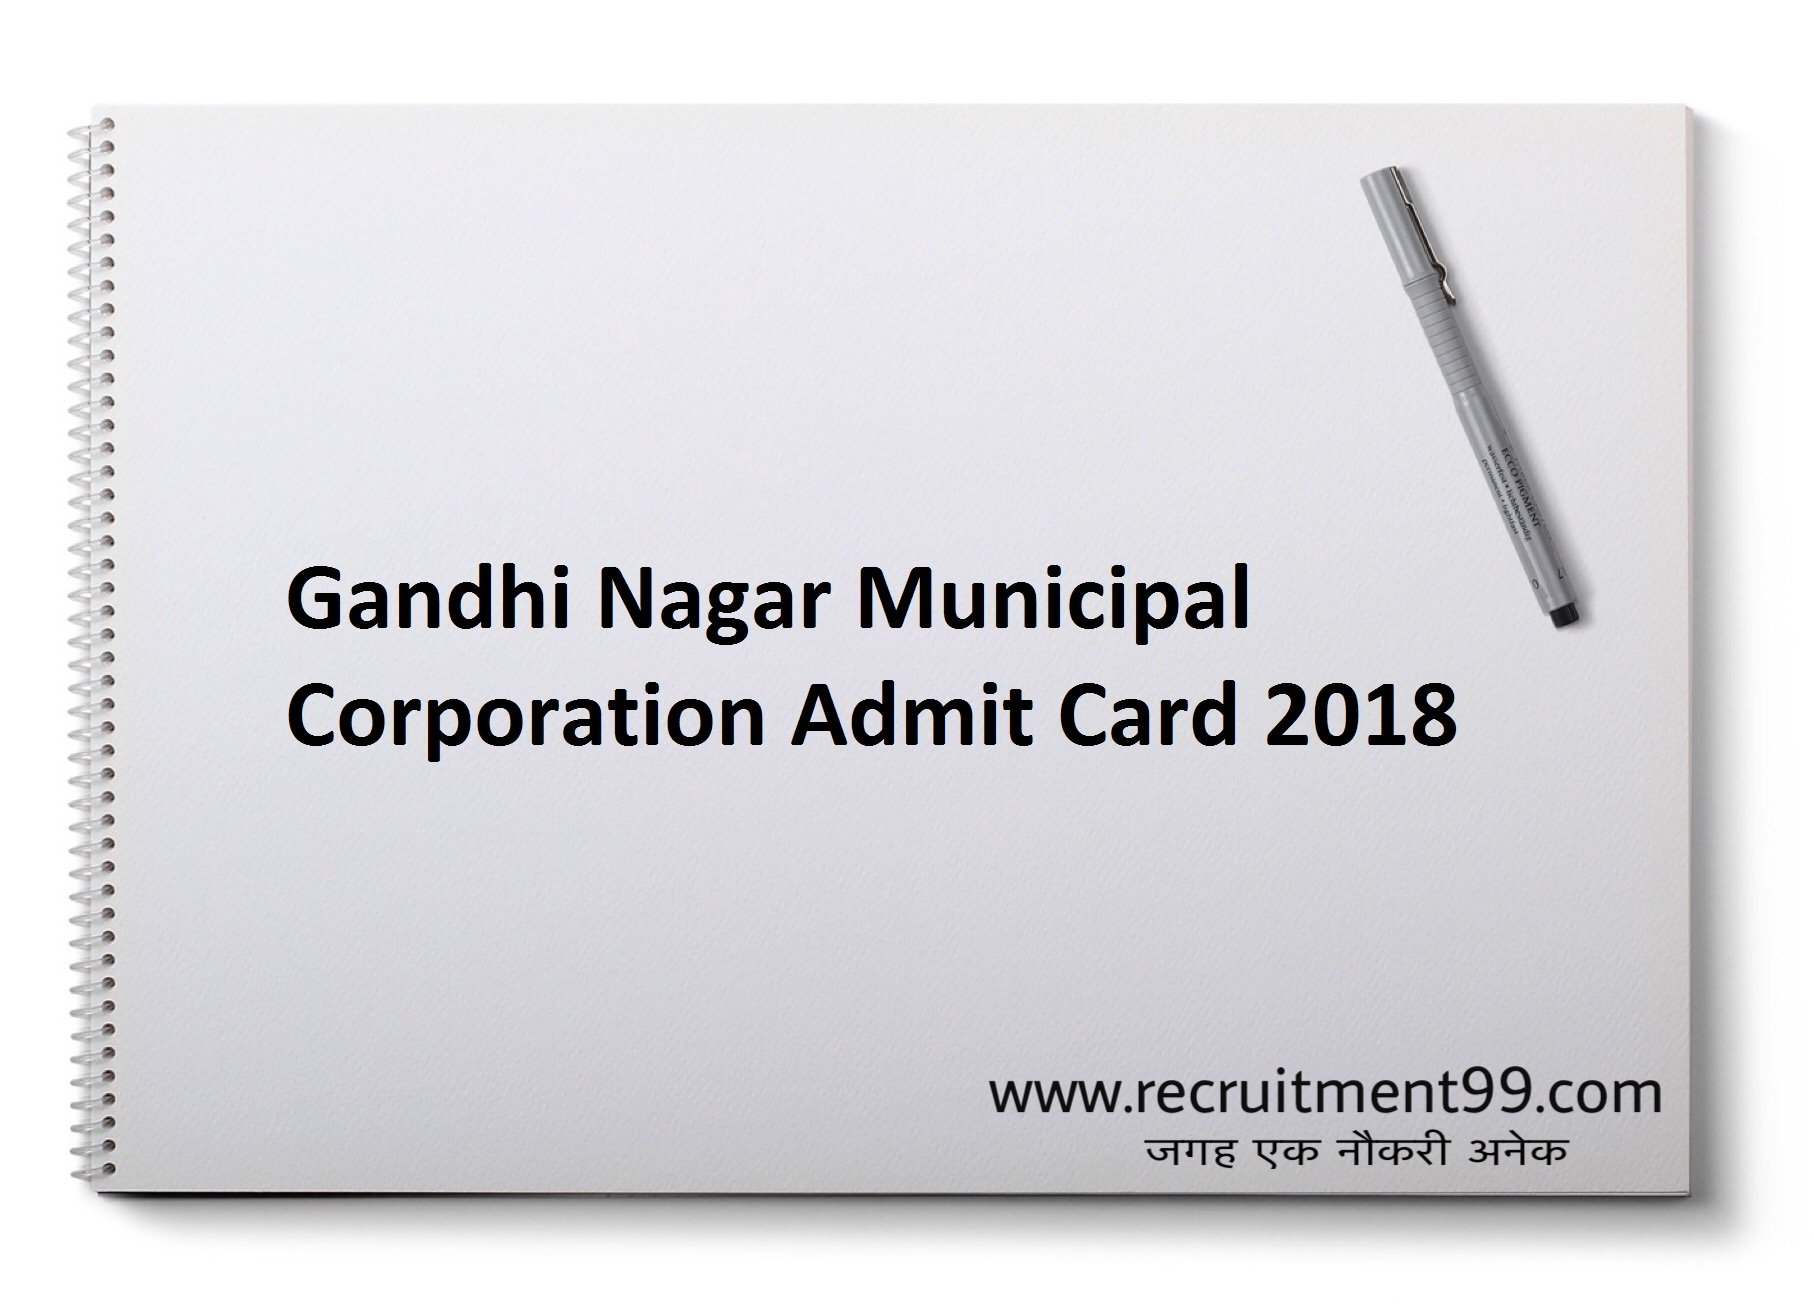 Gandhi Nagar Municipal Corporation Health Officer Junior Town Planner Zonal Officer Veterinary officer Sanitation Superintendent Administrative officer Recruitment Admit Card Result 2018